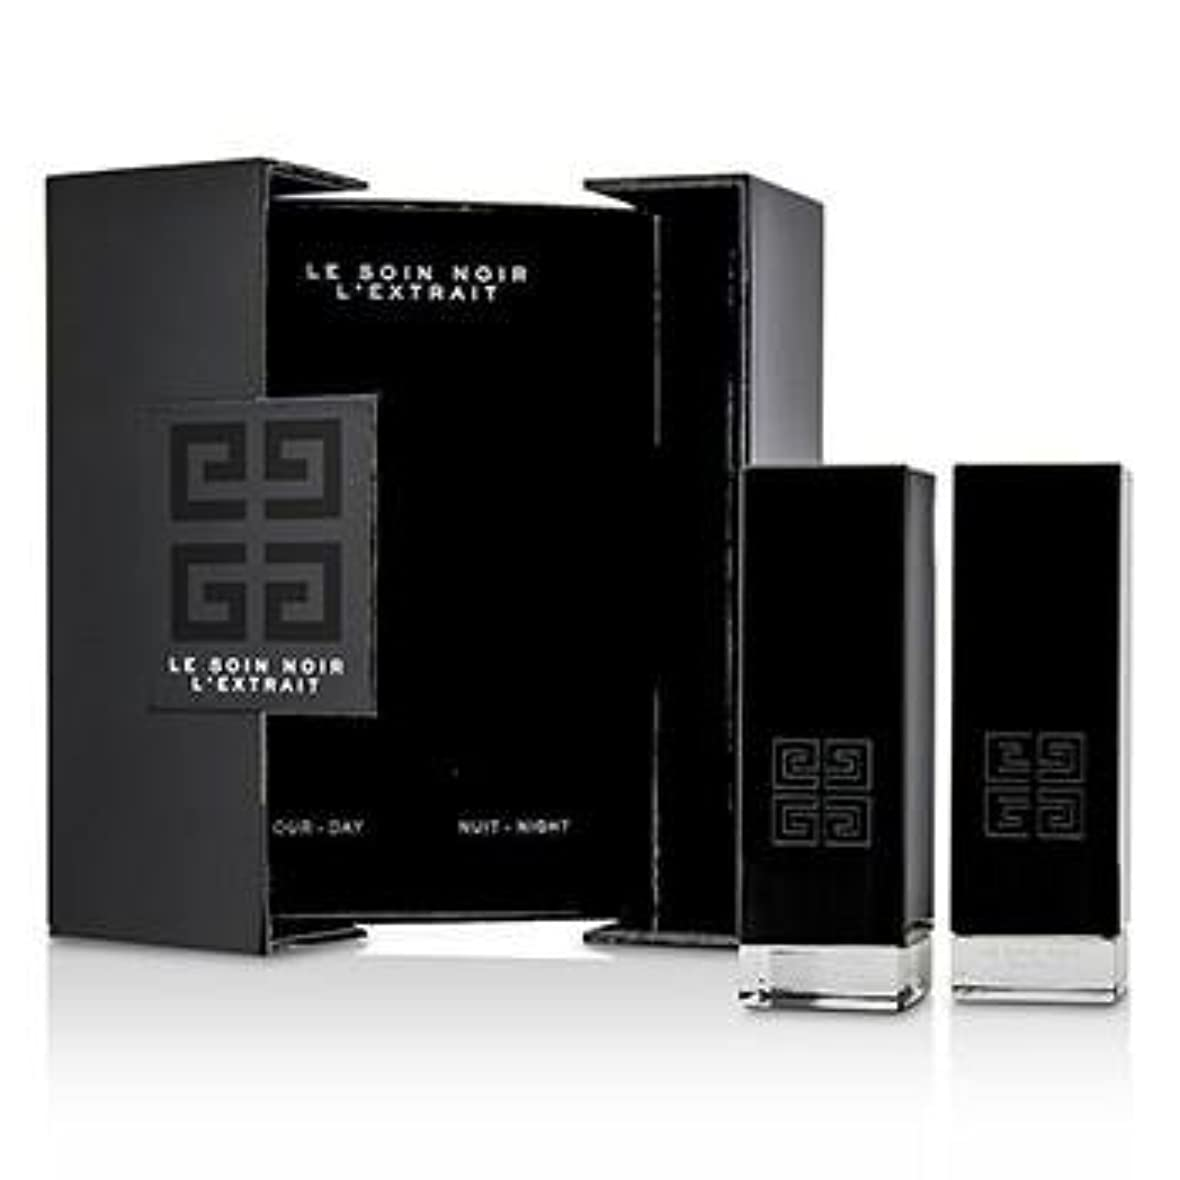 郵便観客アークジバンシィ Le Soin Noir L'Extrait: L'Extrait Day Serum 15ml/0.5oz + L'Extrait Night Serum 15ml/0.5oz 2pcs並行輸入品